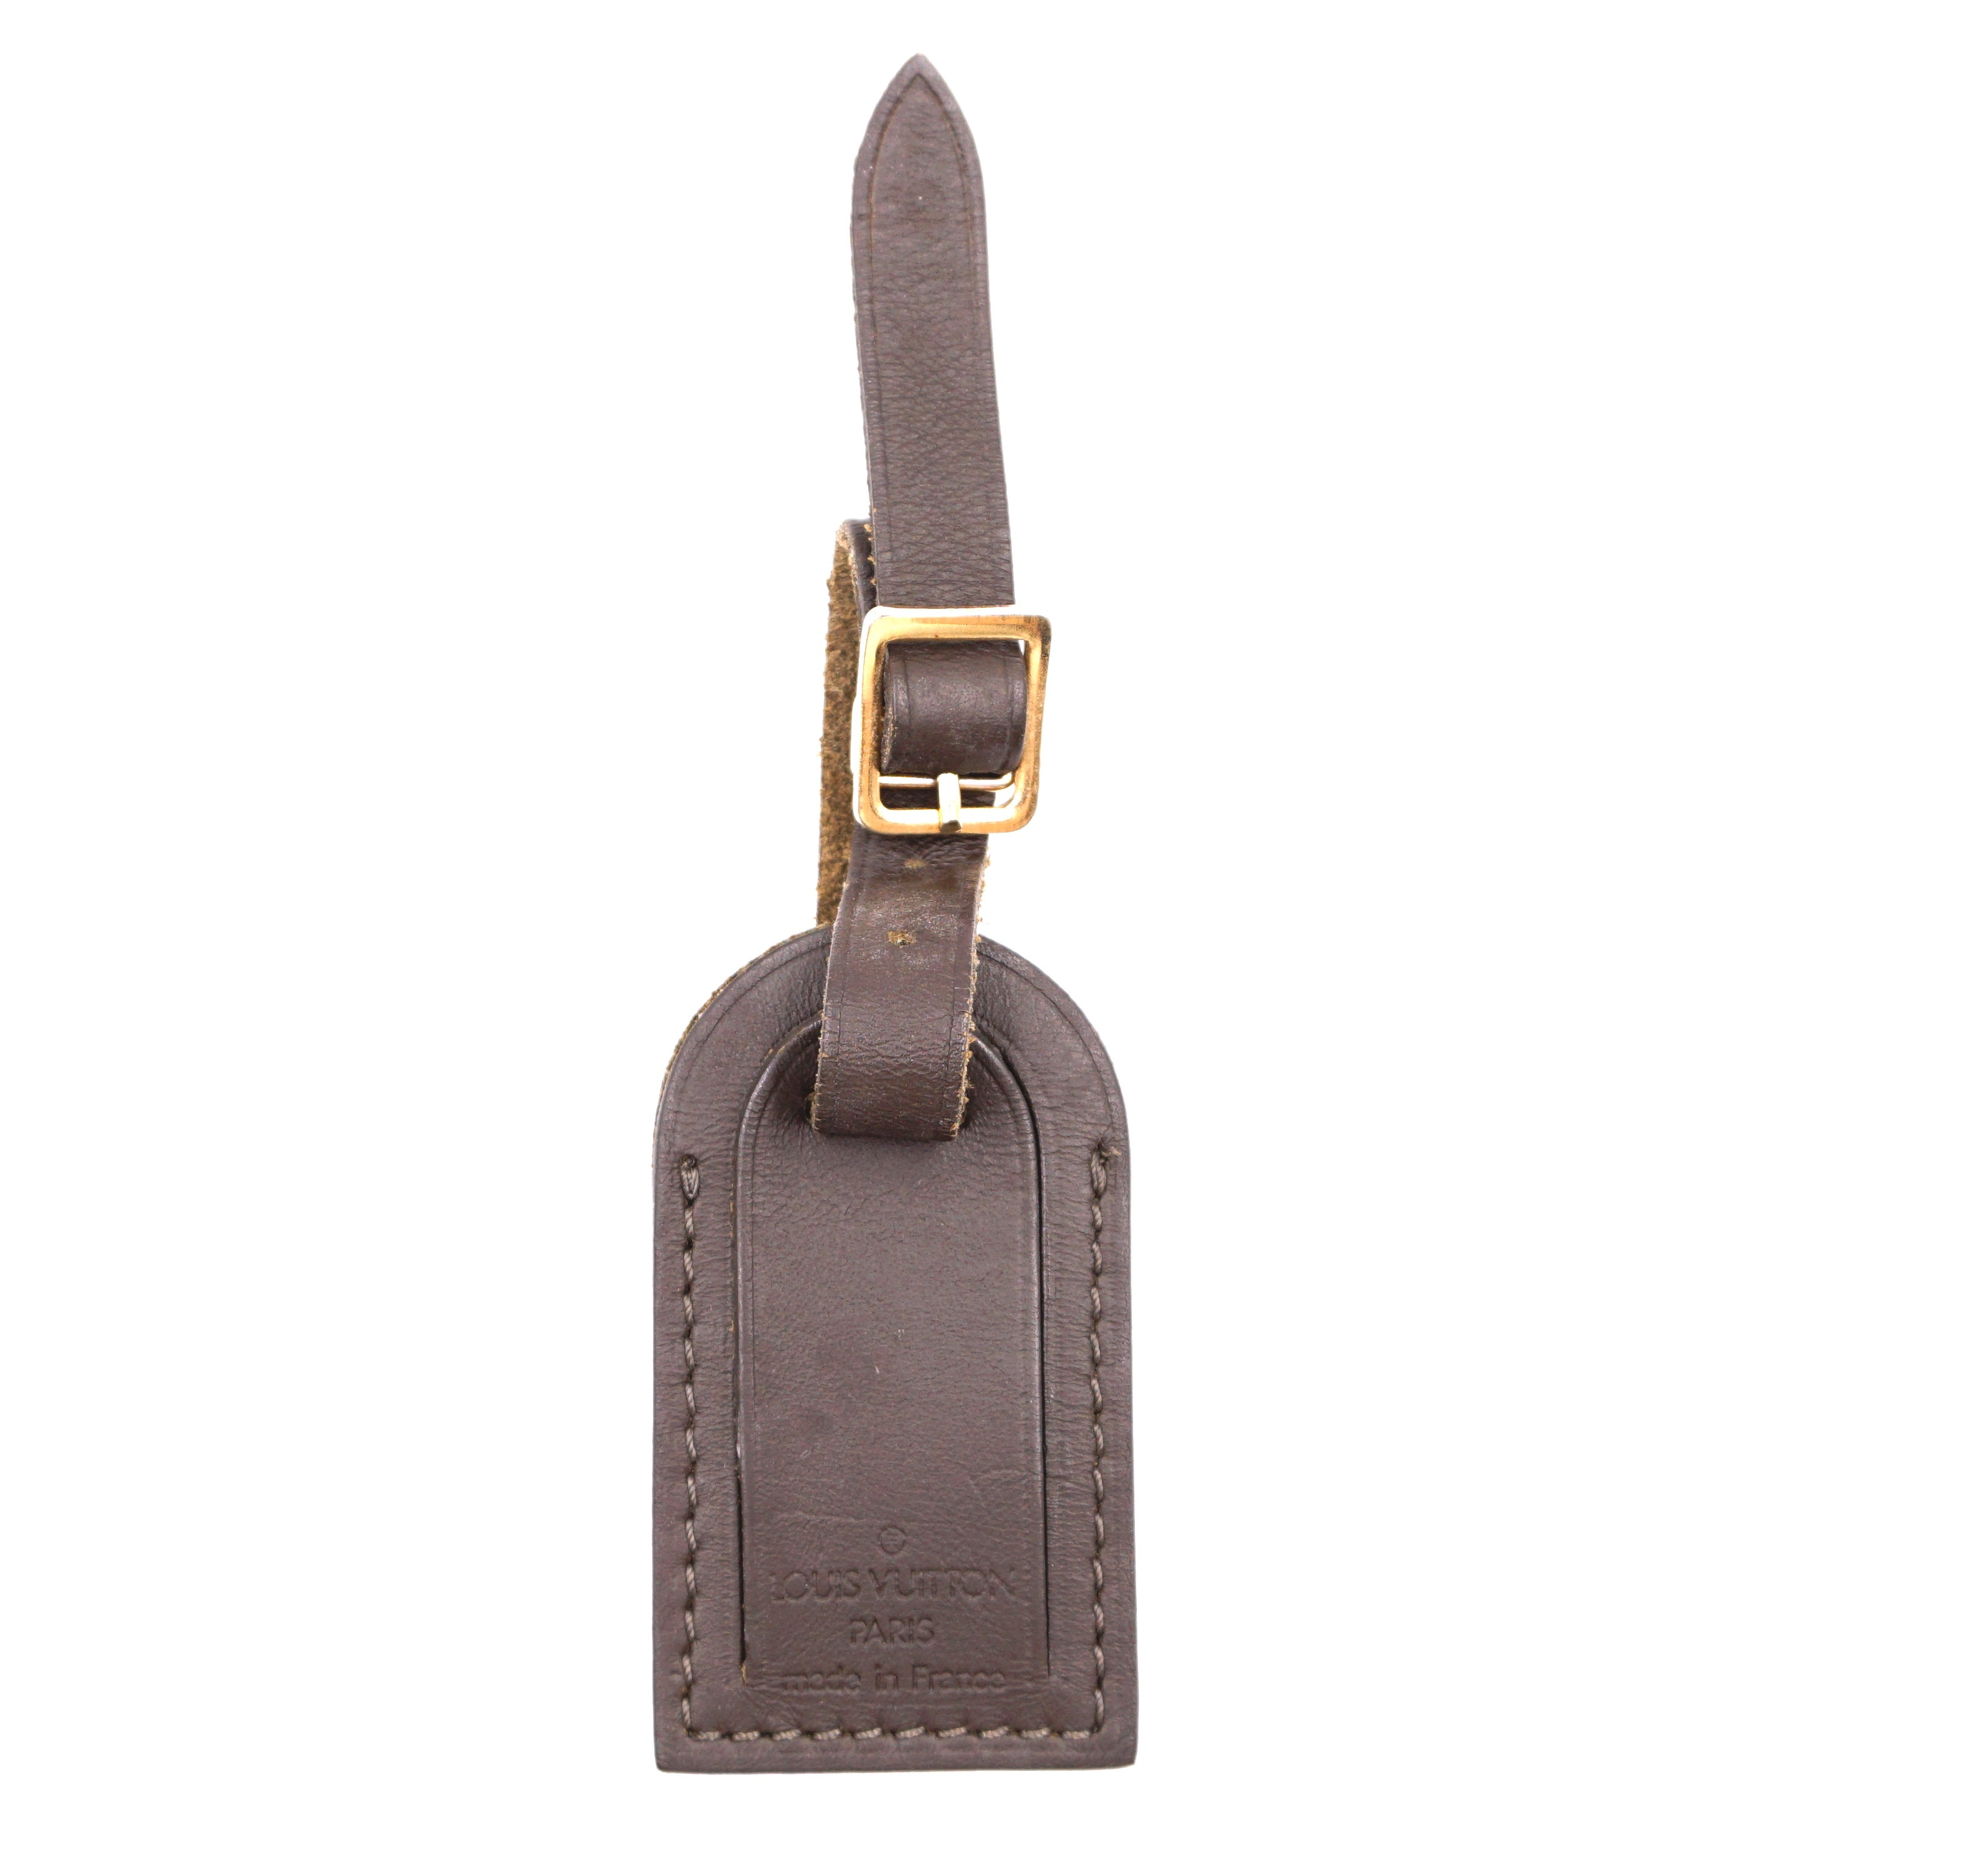 Louis Vuitton Brown Small Smooth Calf Leather Luggage Tag